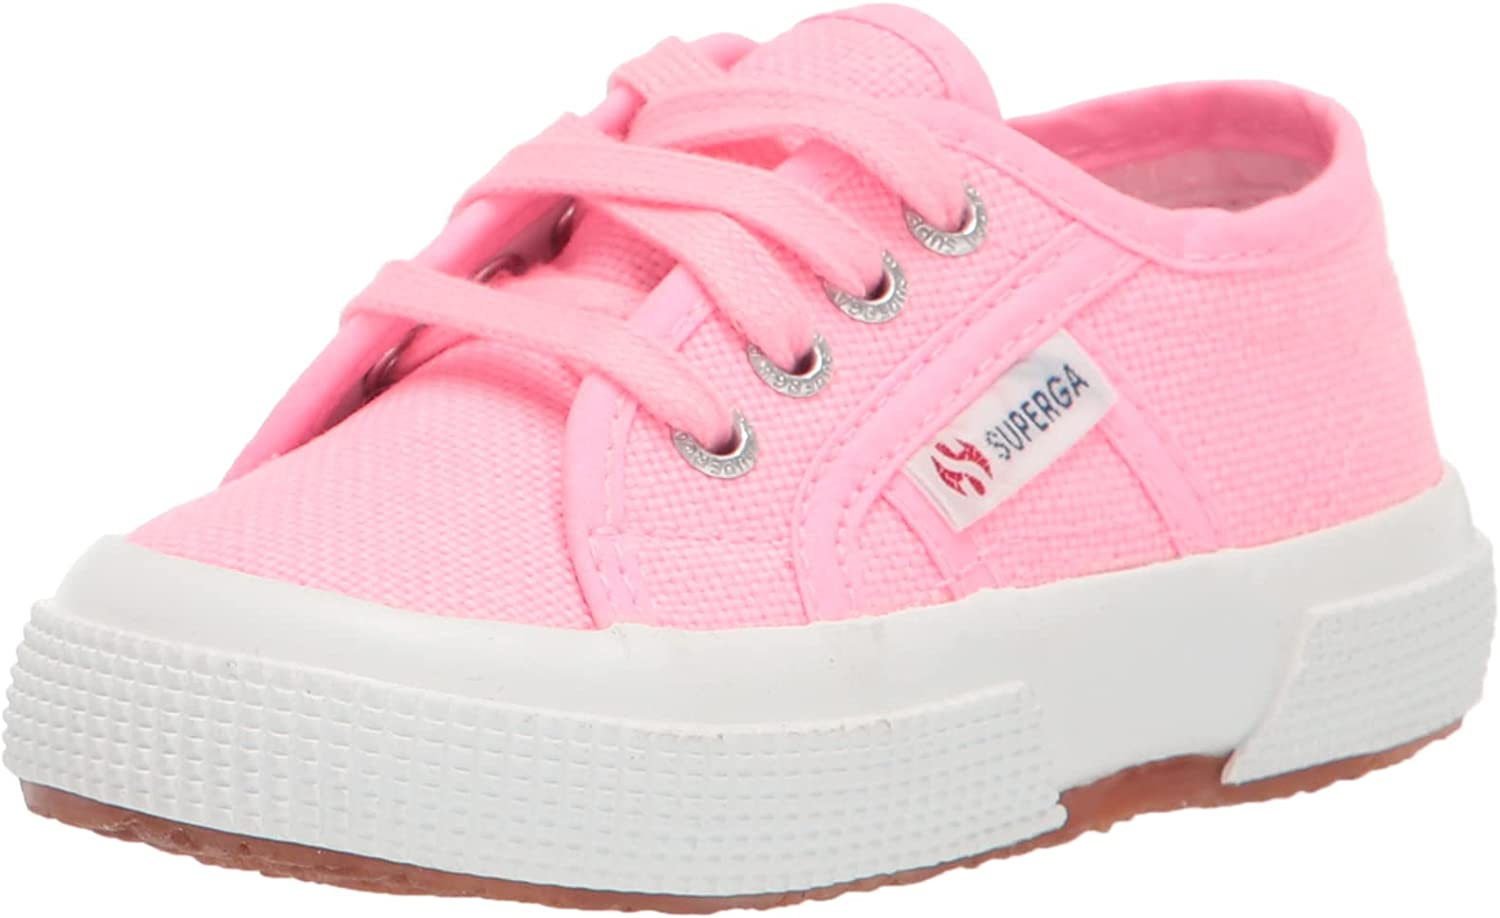 SEAL limited product Superga Unisex-Child 2750 JCOT Sneaker Classic Luxury